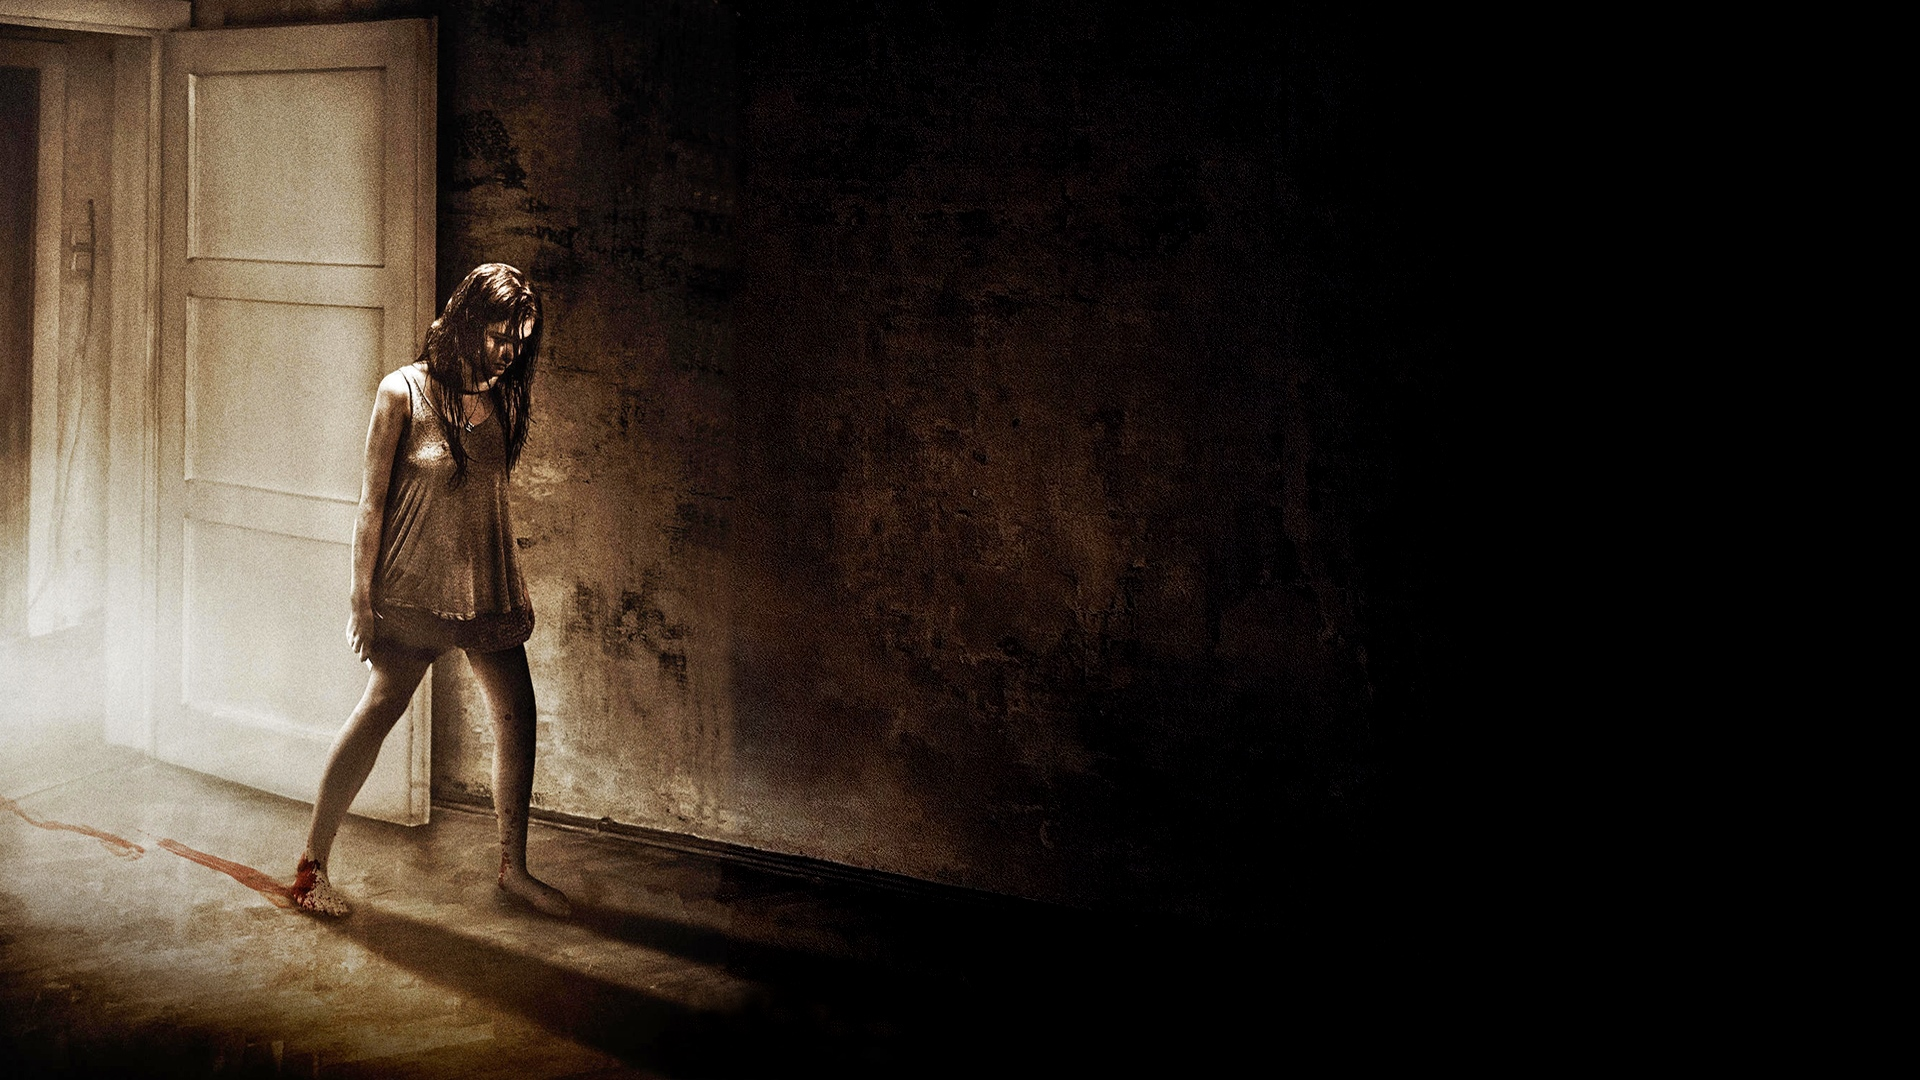 Insidious Chapter 3 Hd Wallpaper Background Image 1920x1080